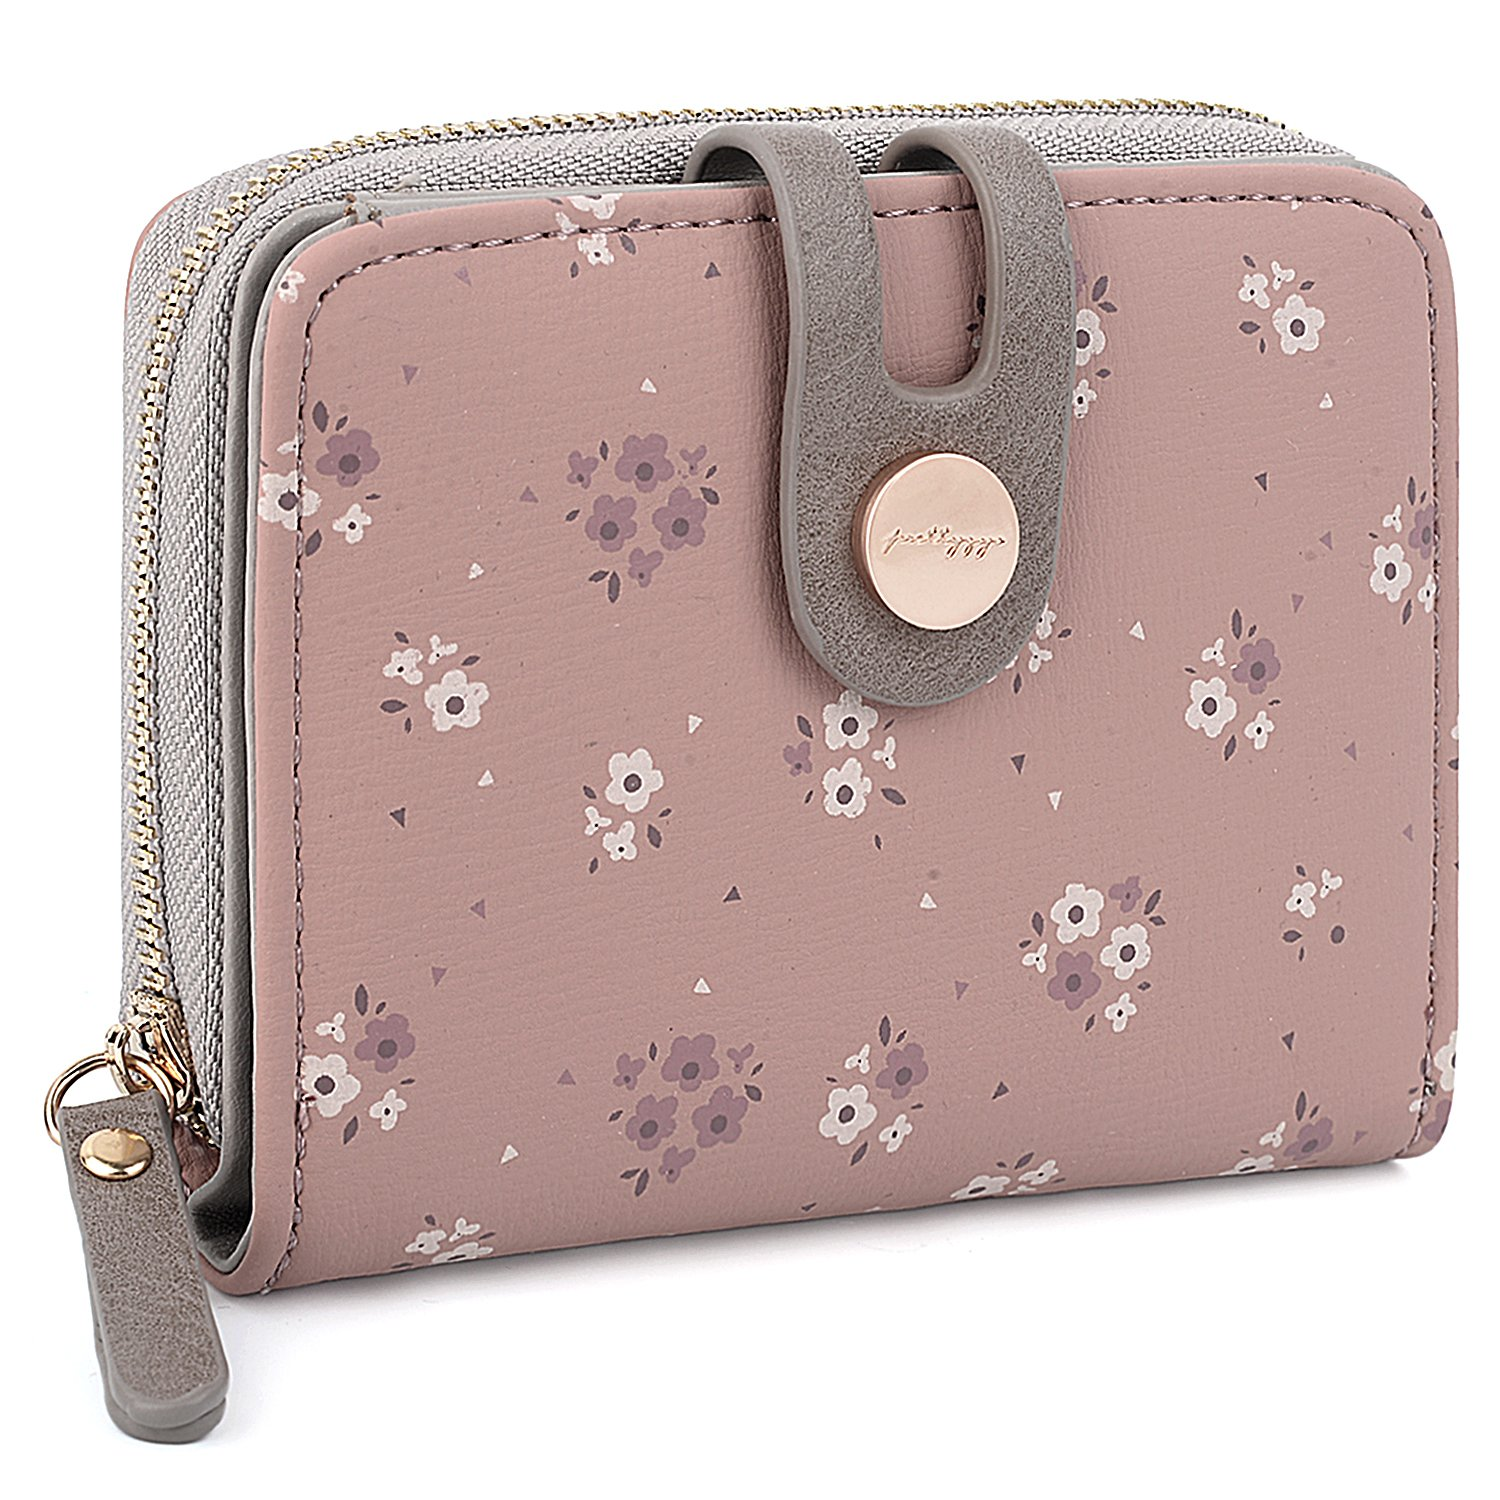 UTO Women Wallet Soft PU Leather Small Flowers Pattern Snap Bifold Zipper Card Holder Organizer Pale Mauve by UTO